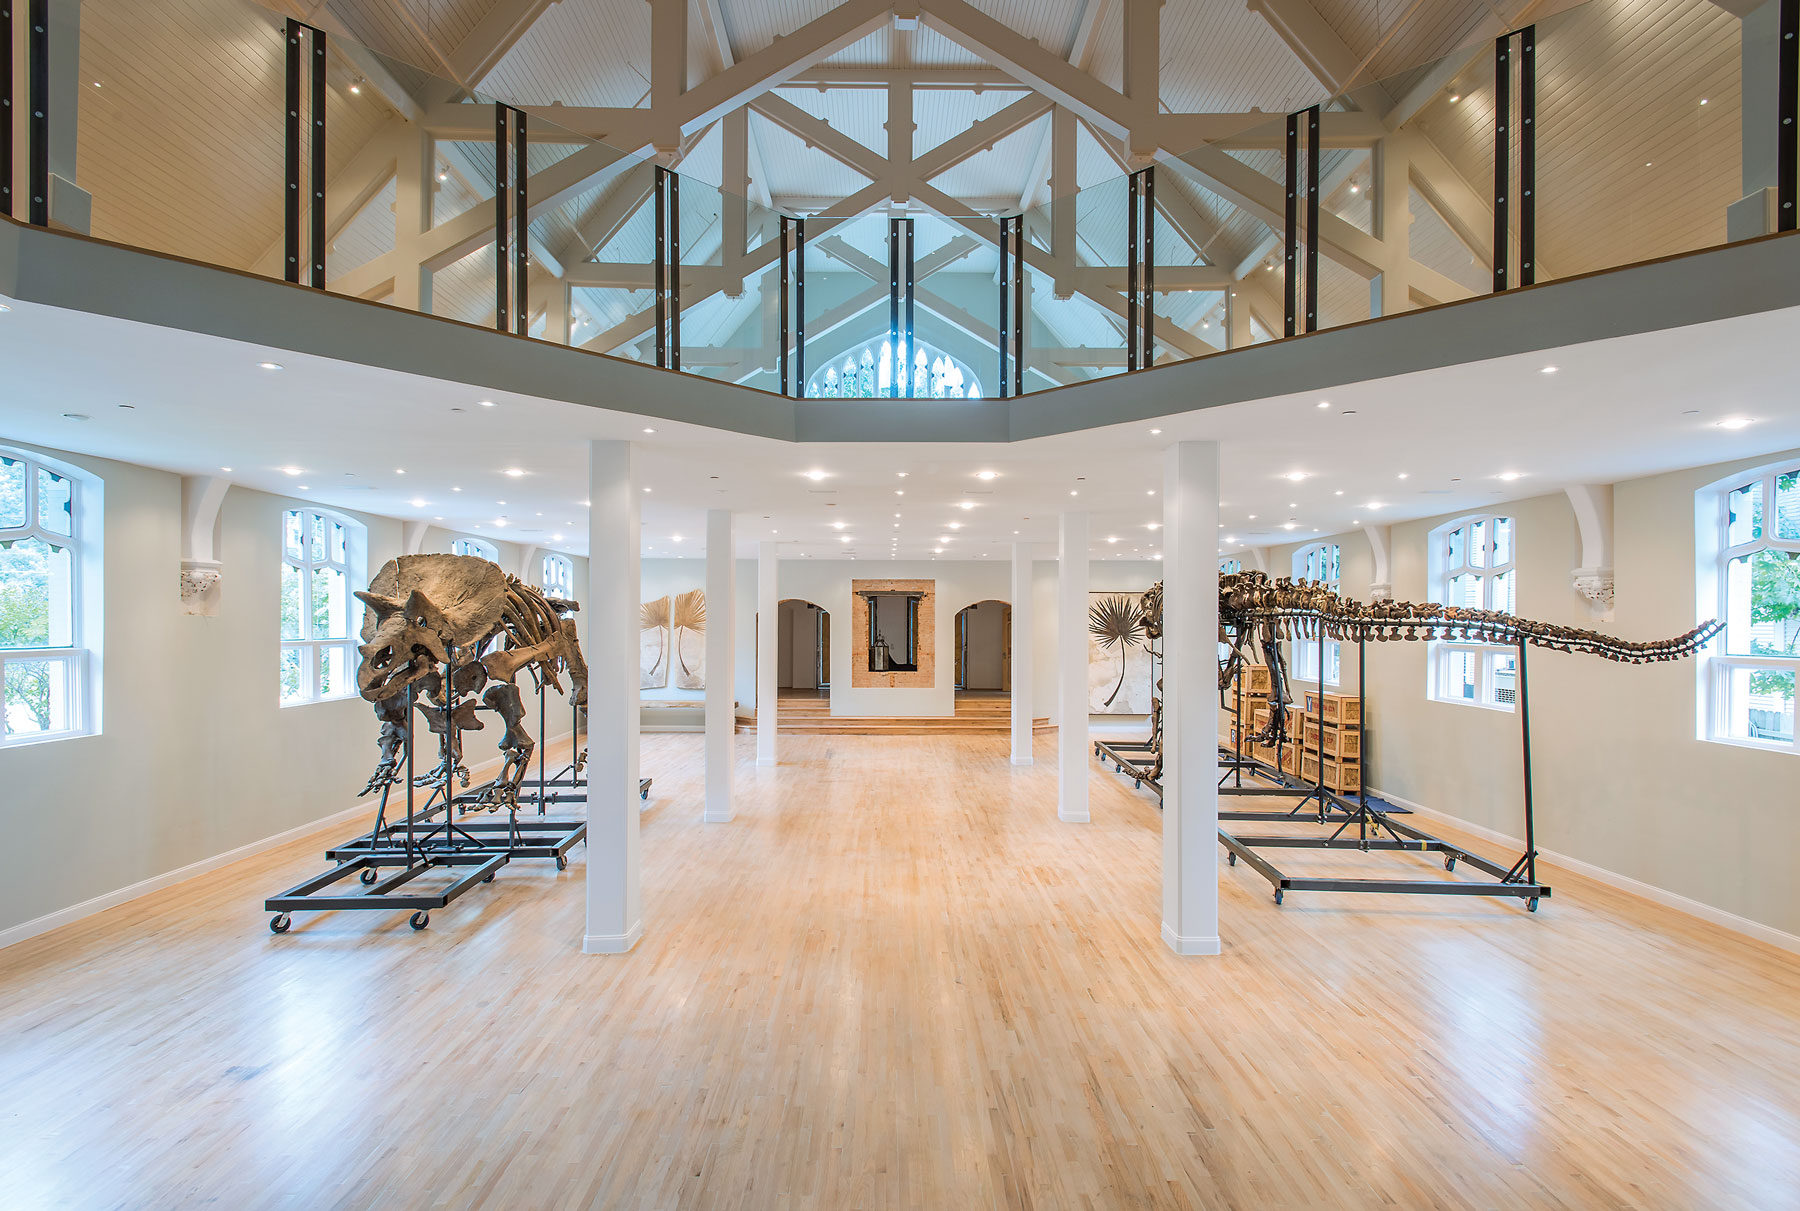 This renovated 1910 church is home to a T. rex and friends.